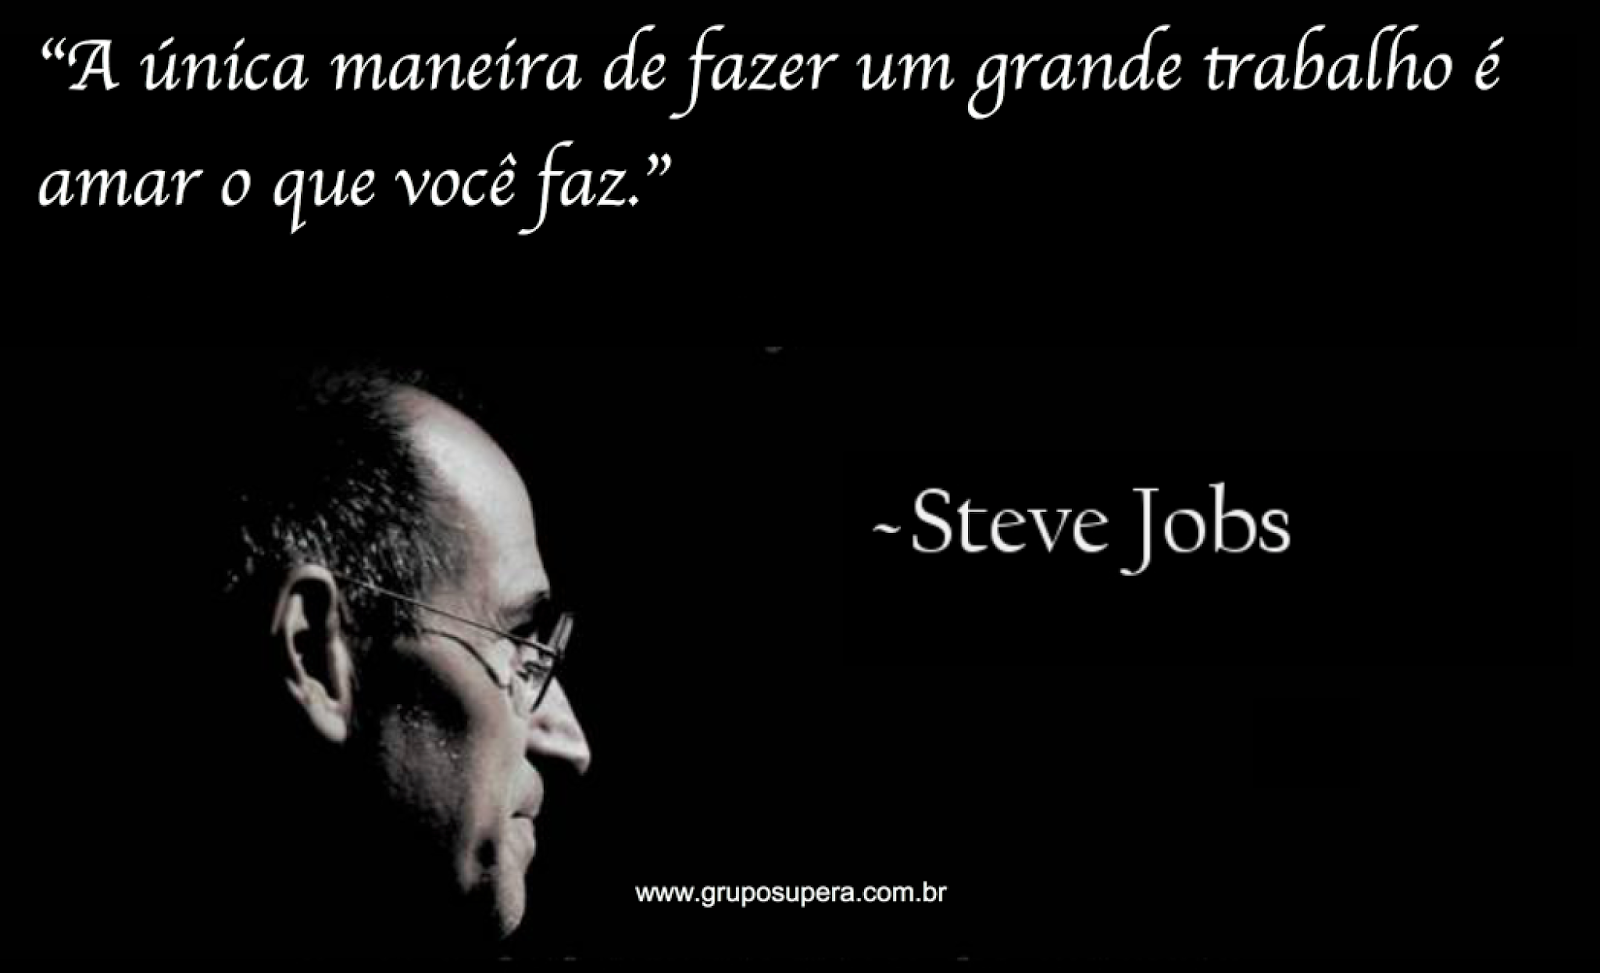 frases famosas, frases motivacionais, steve jobs, apple, iphone, ipad, mac book